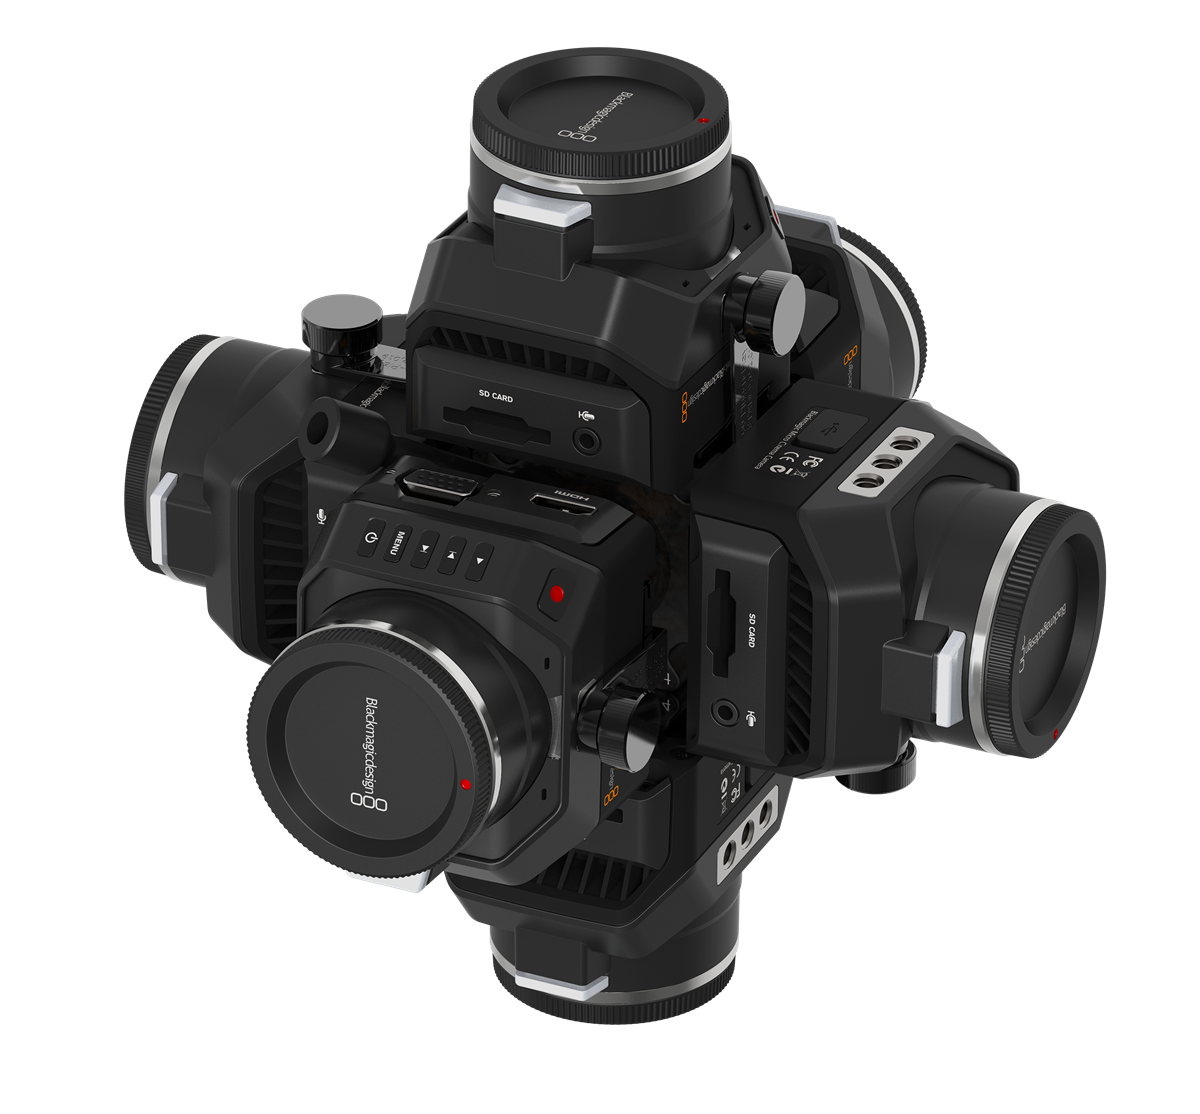 360dictos 360Helios 6 BlackMagic design